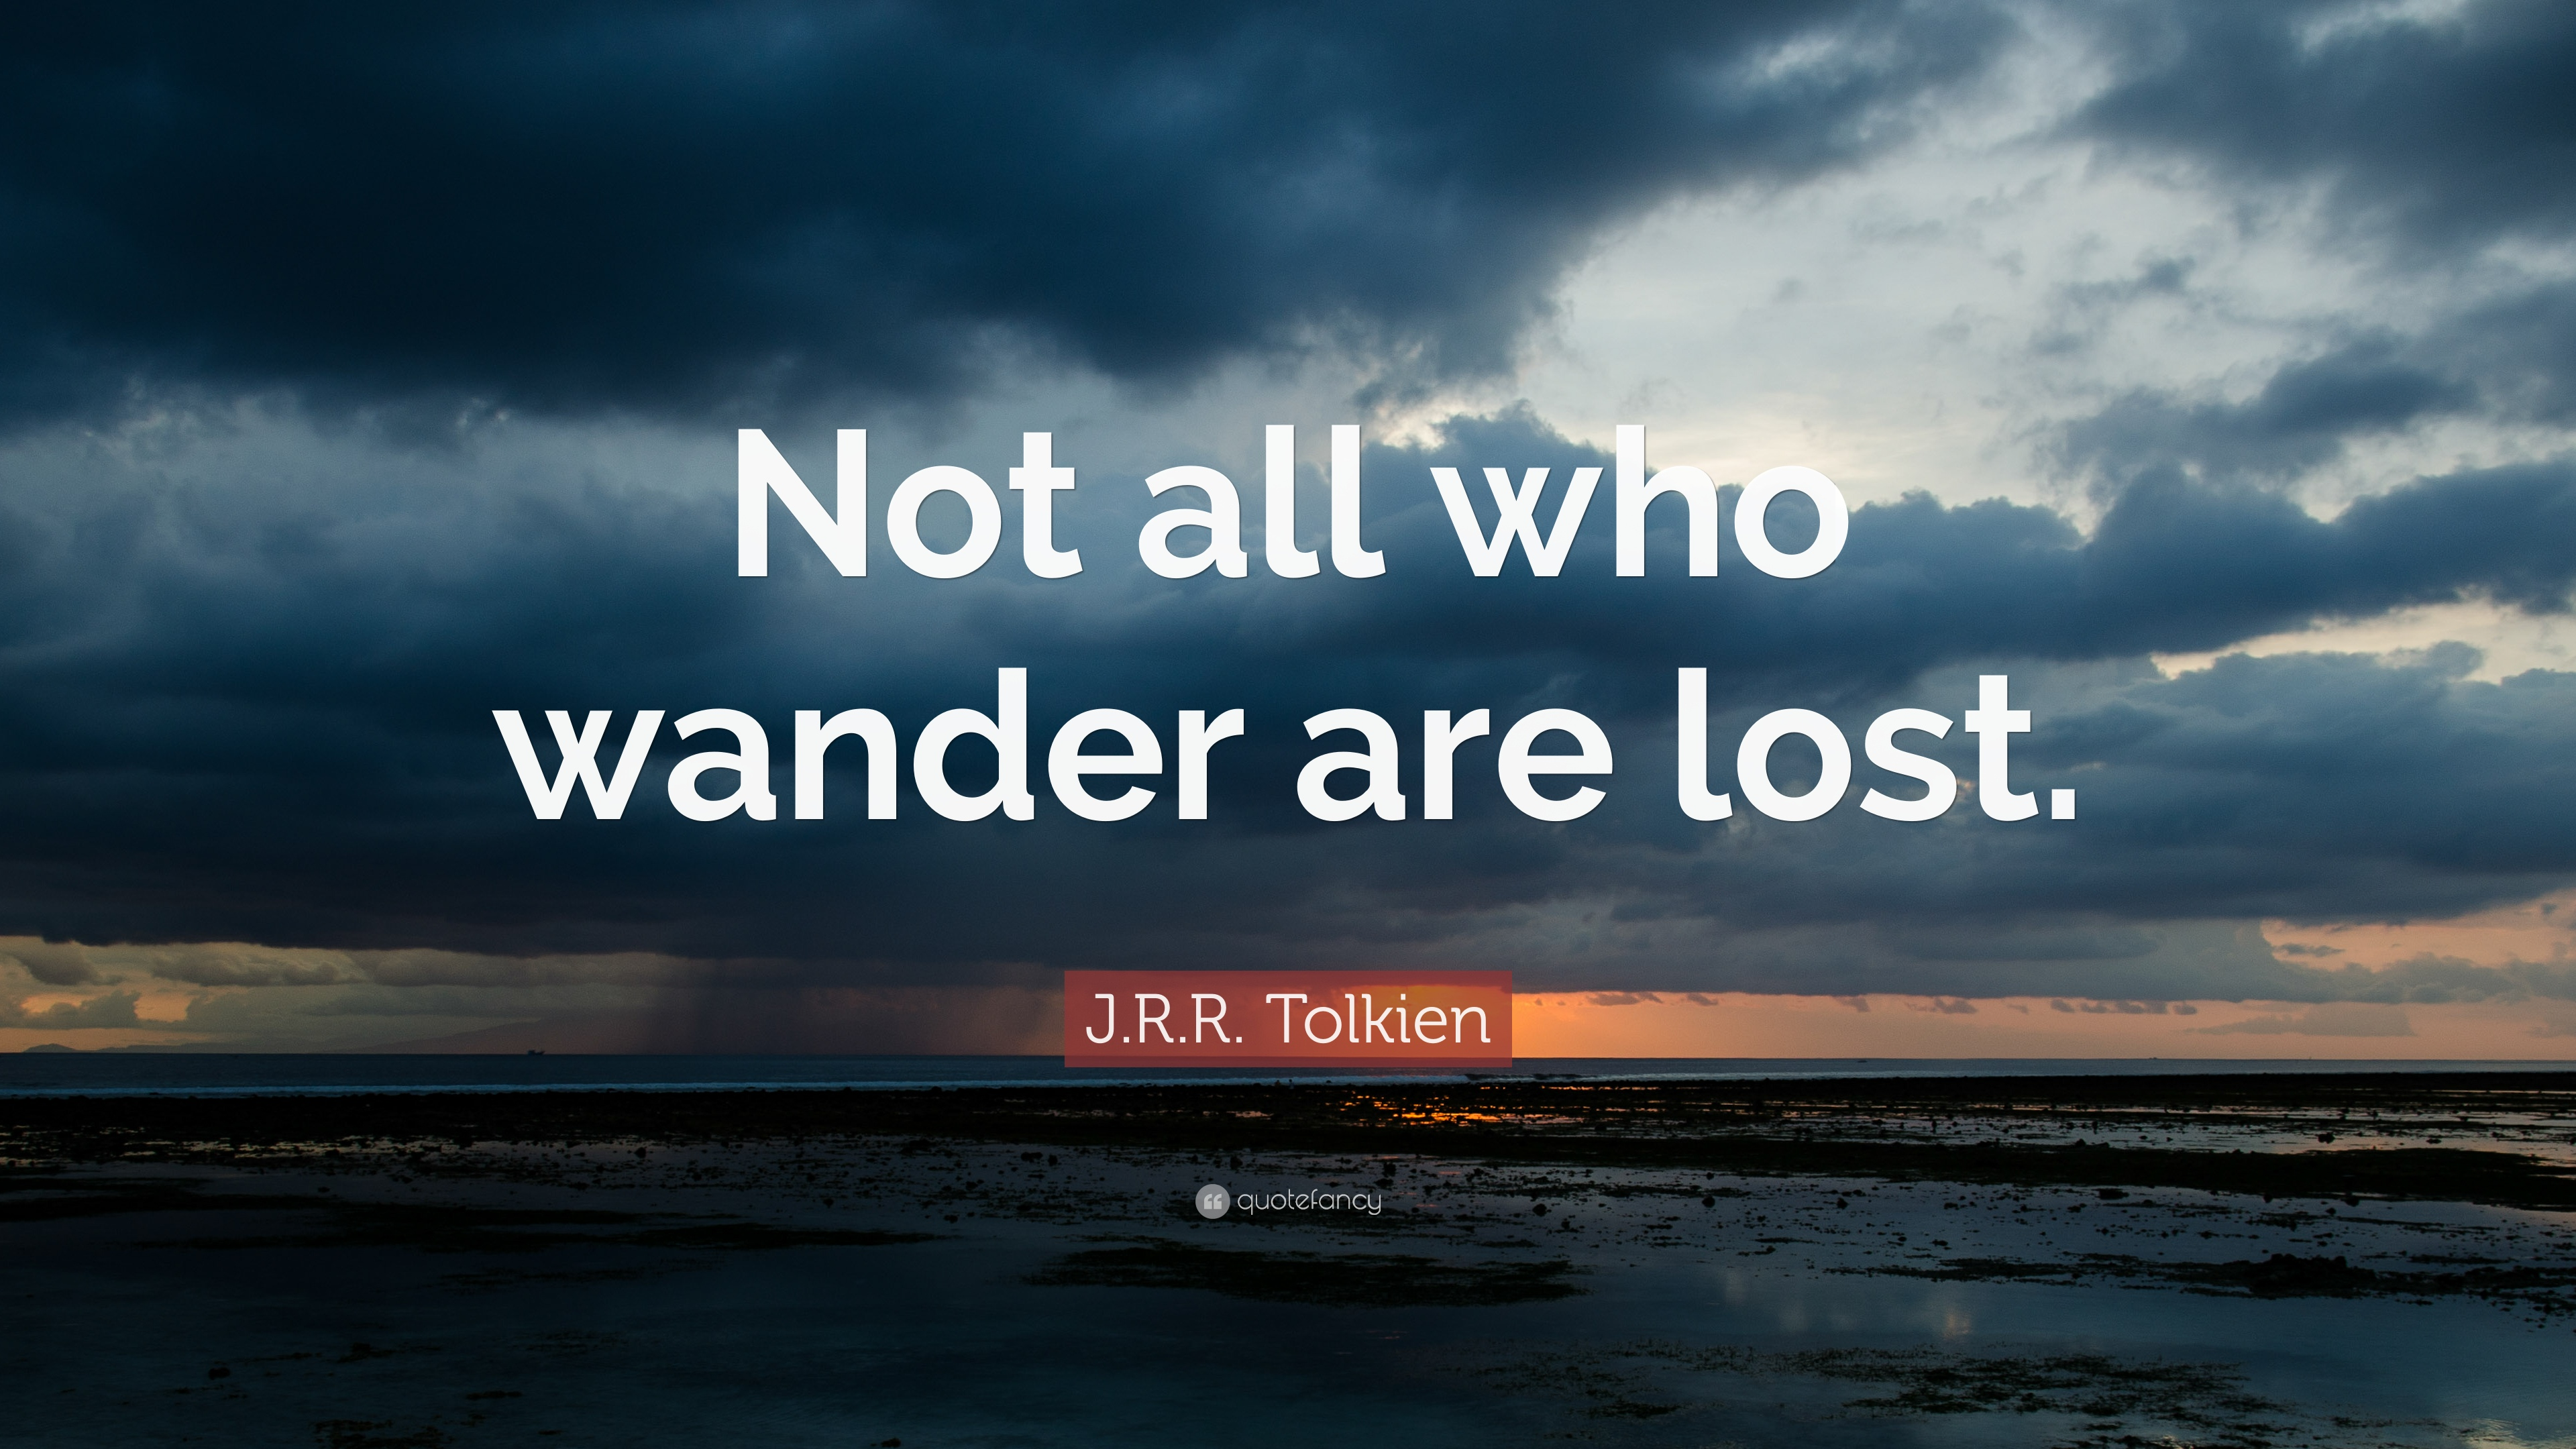 Happiness Quotes Wallpaper Iphone J R R Tolkien Quote Not All Who Wander Are Lost 21